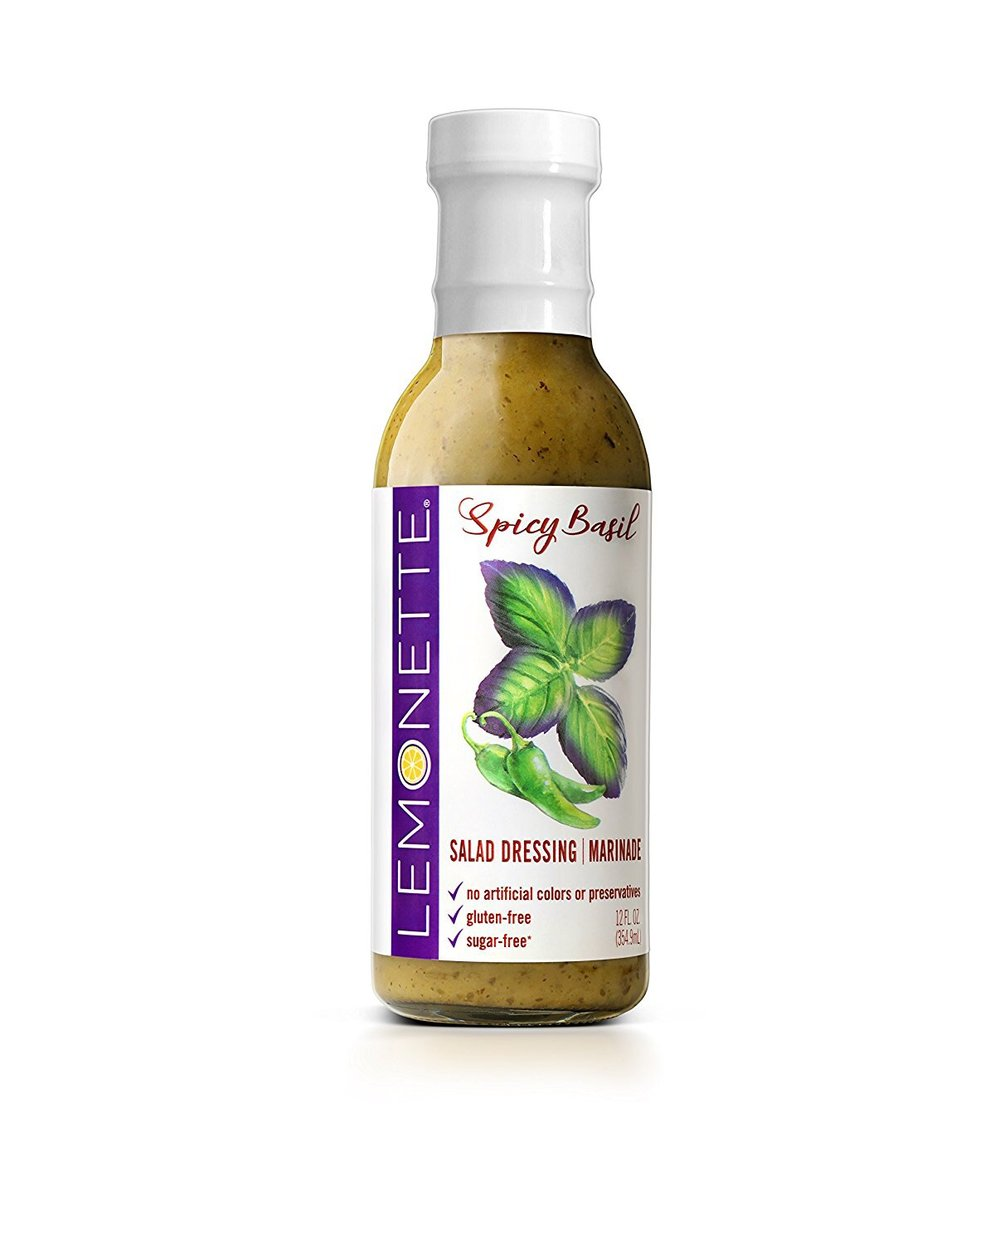 Lemonette Spicy Basil Dressing on Treatmo